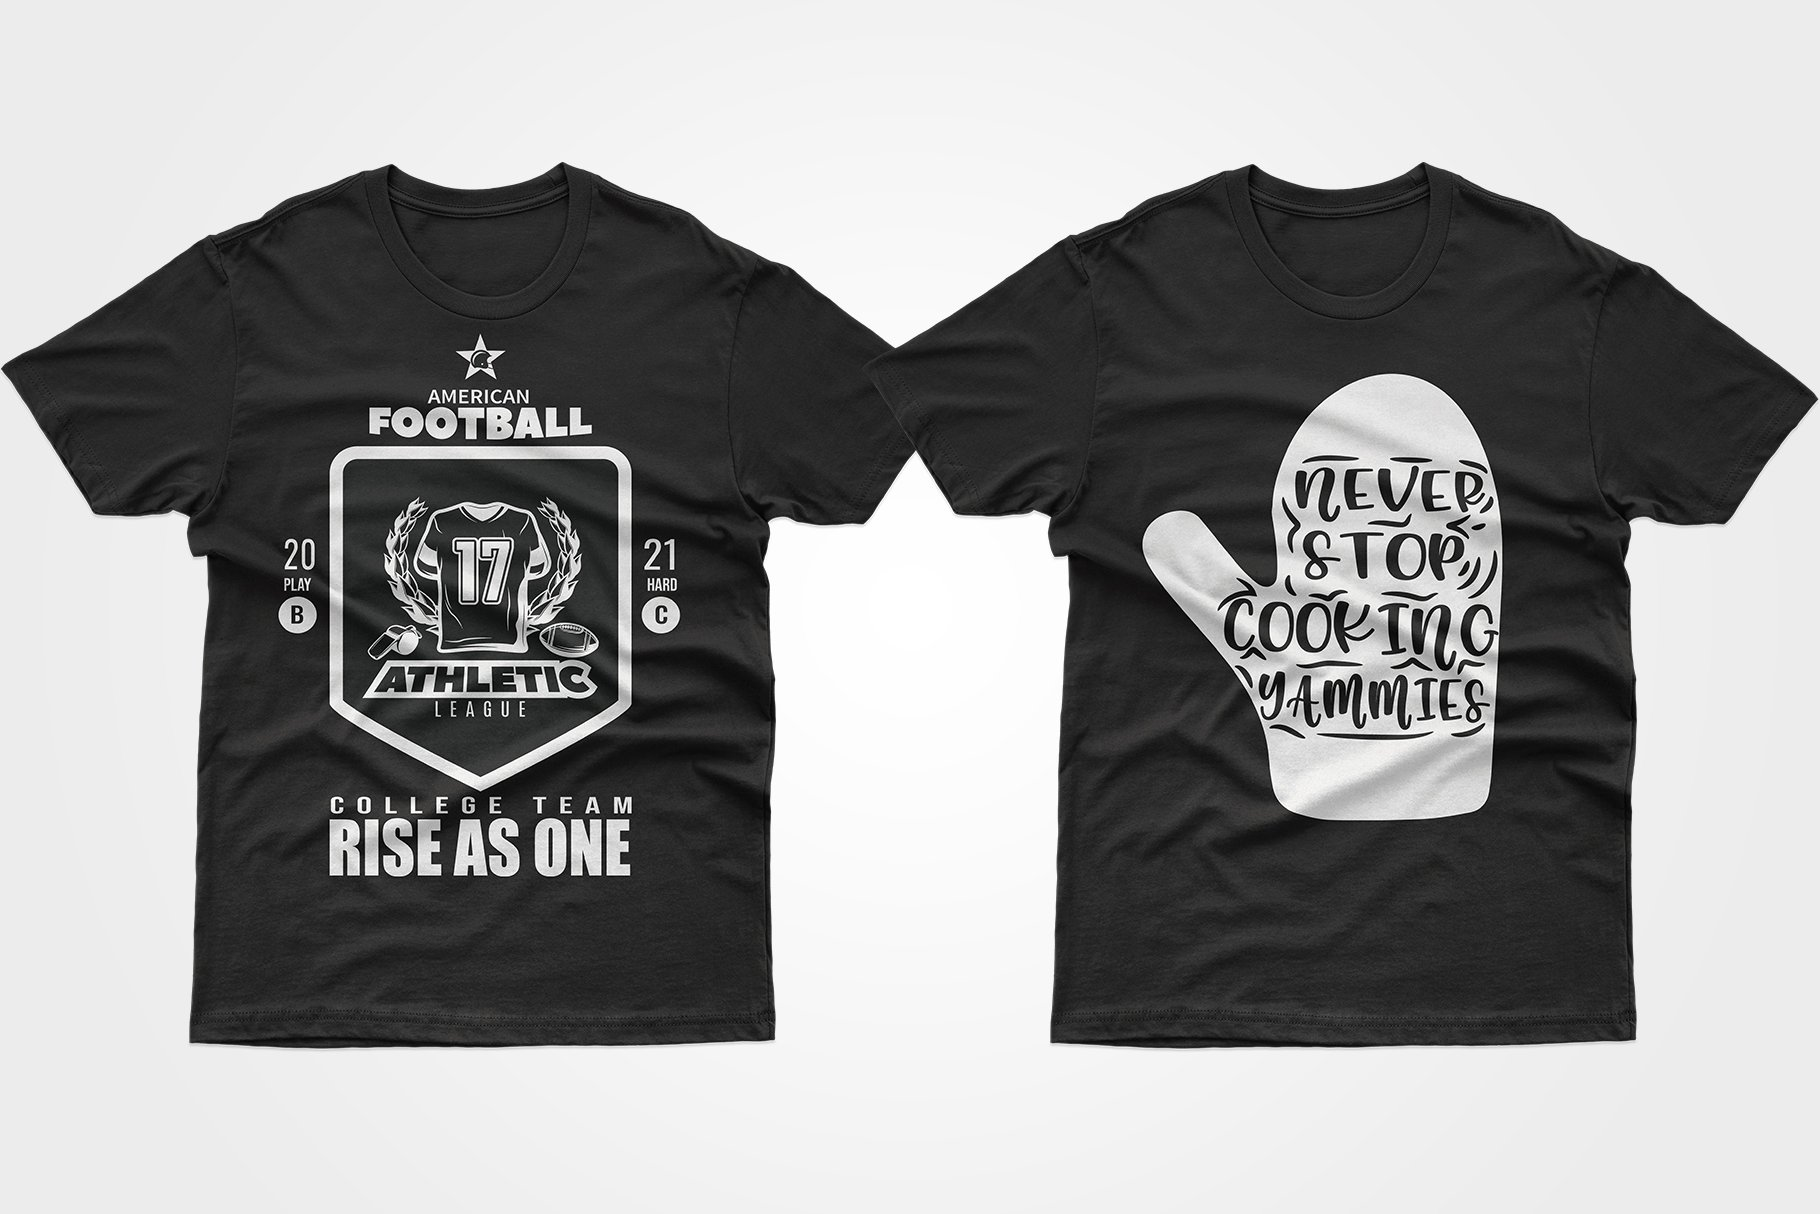 Two black T-shirts - one with a kitchen mitten, the other with a football shirt.